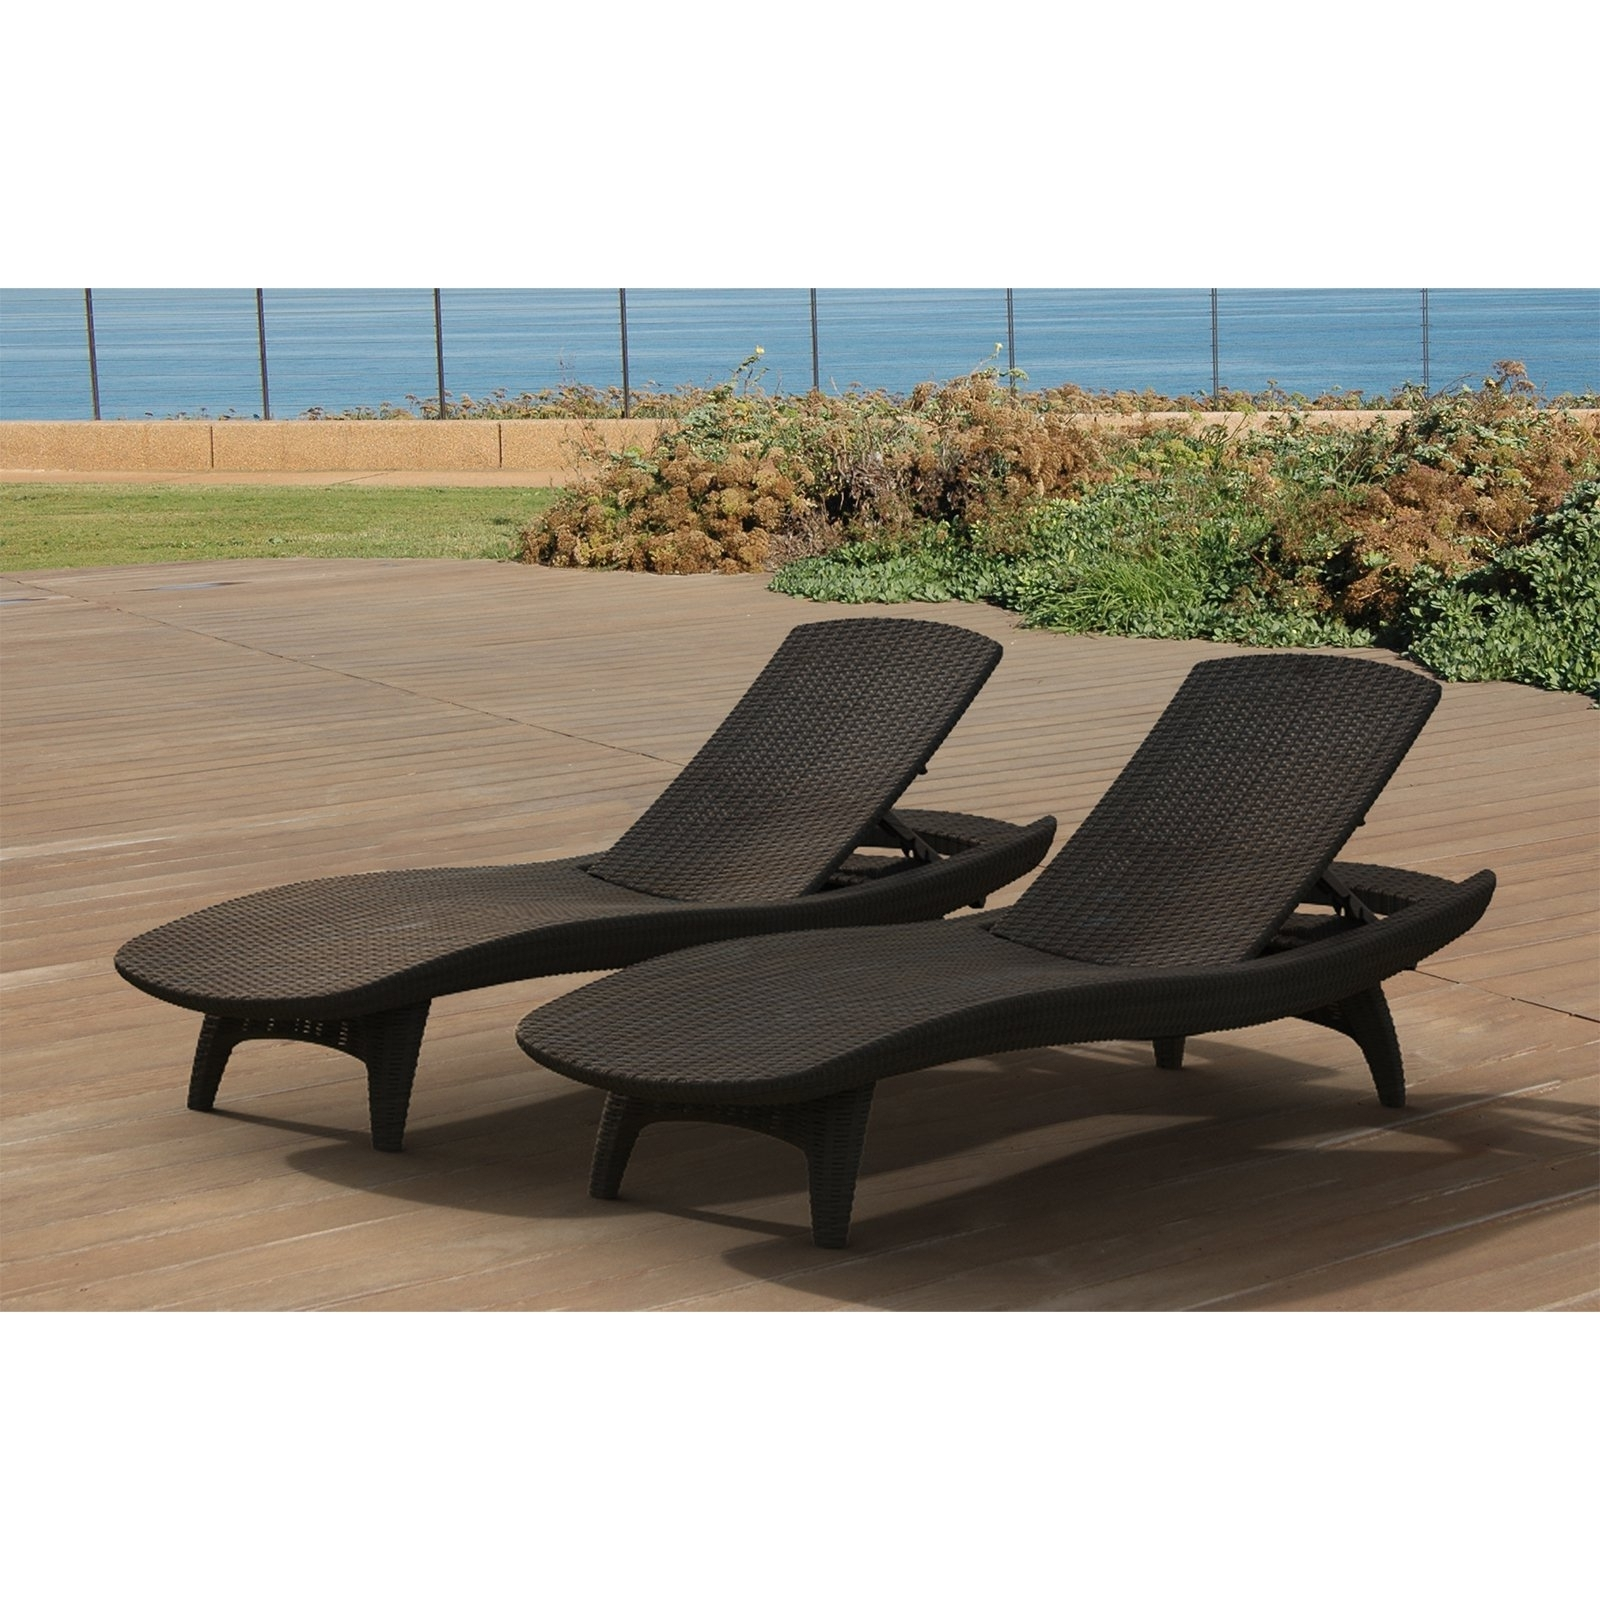 Chaise Lounge Chairs Patio Furniture • Lounge Chairs Ideas In Most Current Black Outdoor Chaise Lounge Chairs (View 3 of 15)